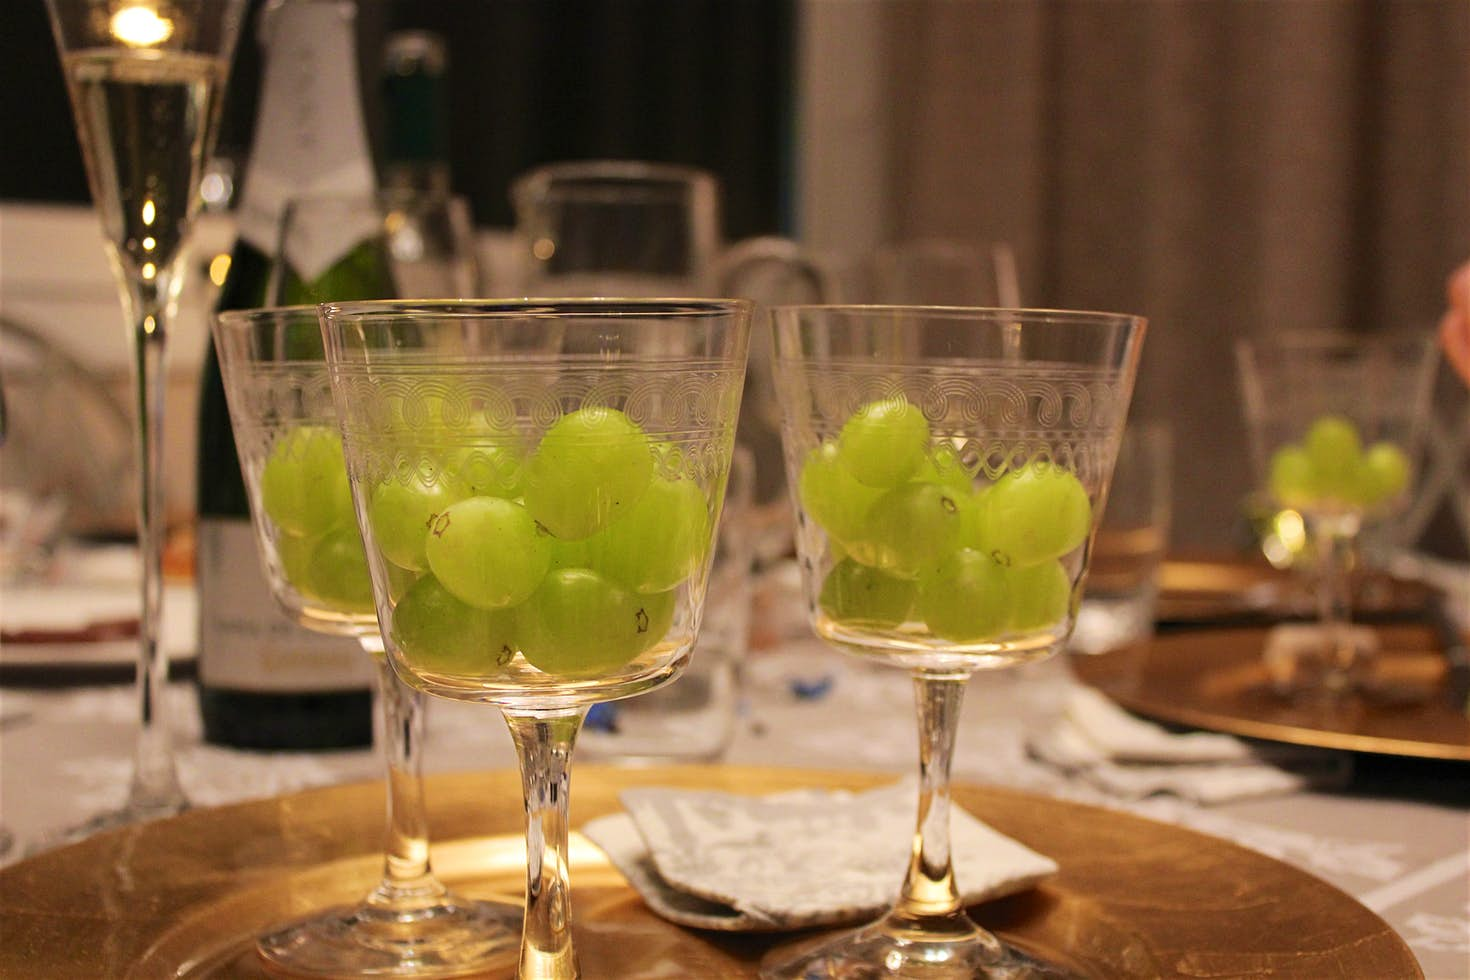 12 grapes for each strike at midnight. Image by Chris Oakley / CC BY 2.0